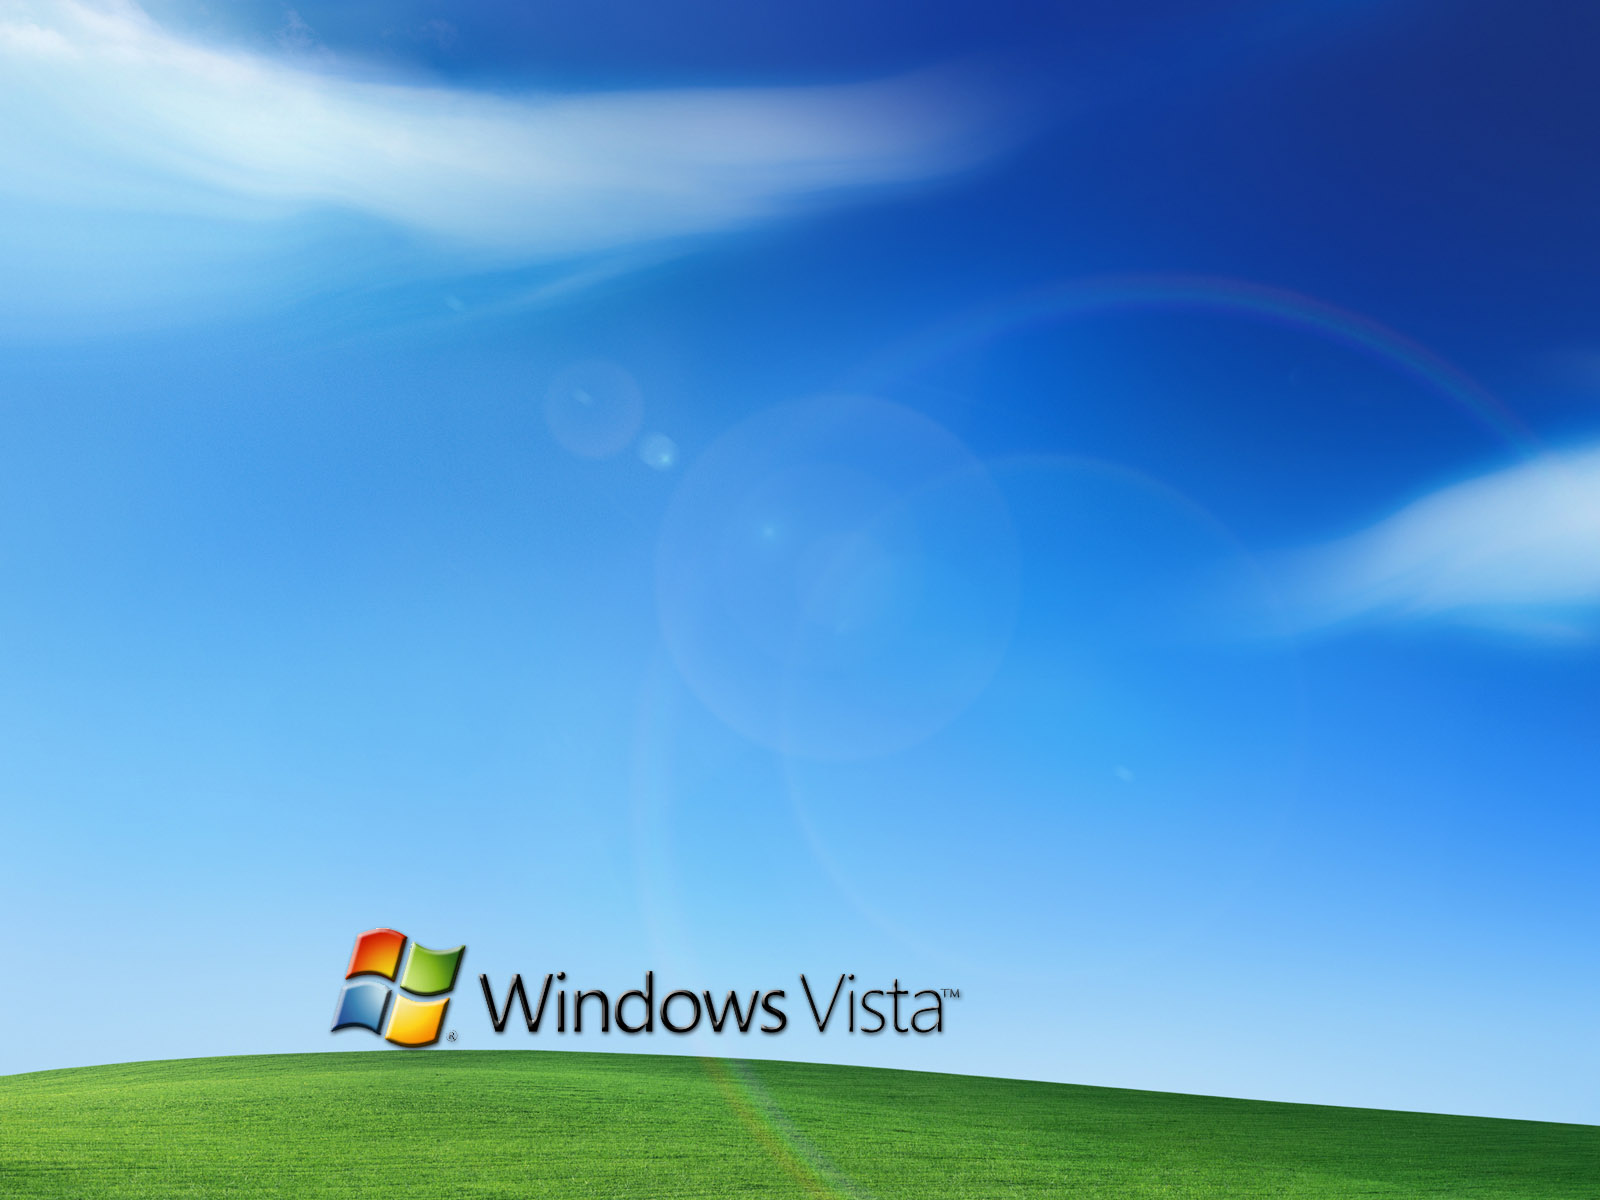 http://4.bp.blogspot.com/_LGCiC6y40N4/TOXpnGhJEjI/AAAAAAAAABg/YzXIXdSjtjM/s1600/Windows_Vista_Longhorn_Bliss_Wallpaper.jpg